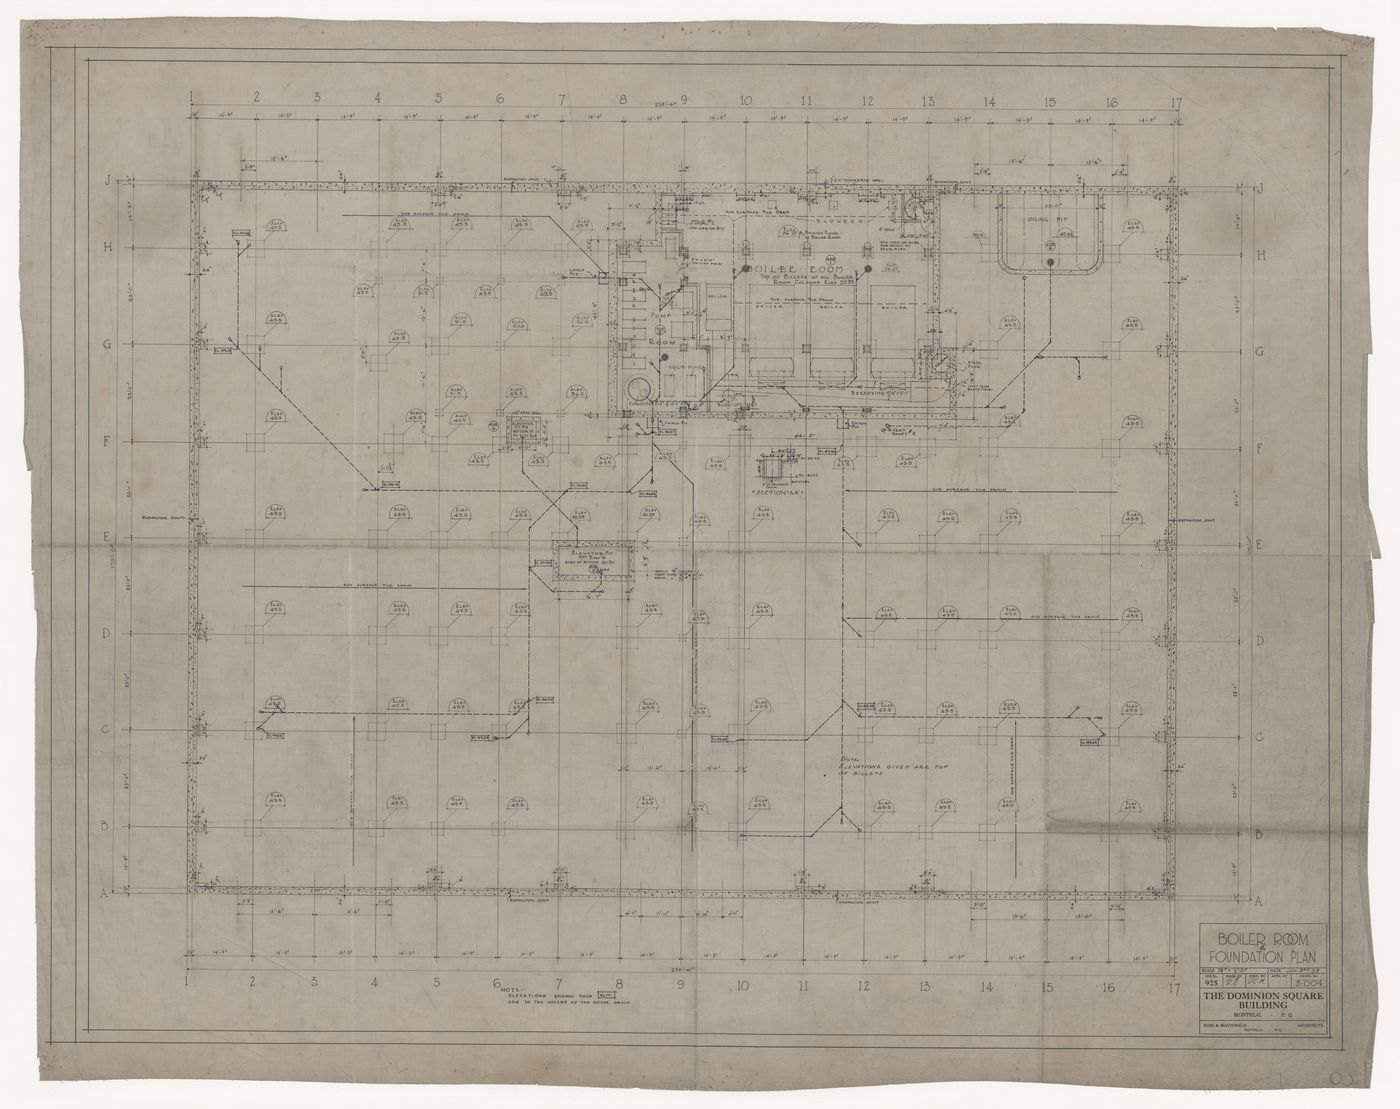 Boiler room and foundation plan for Dominion Square Building, Montreal, Québec